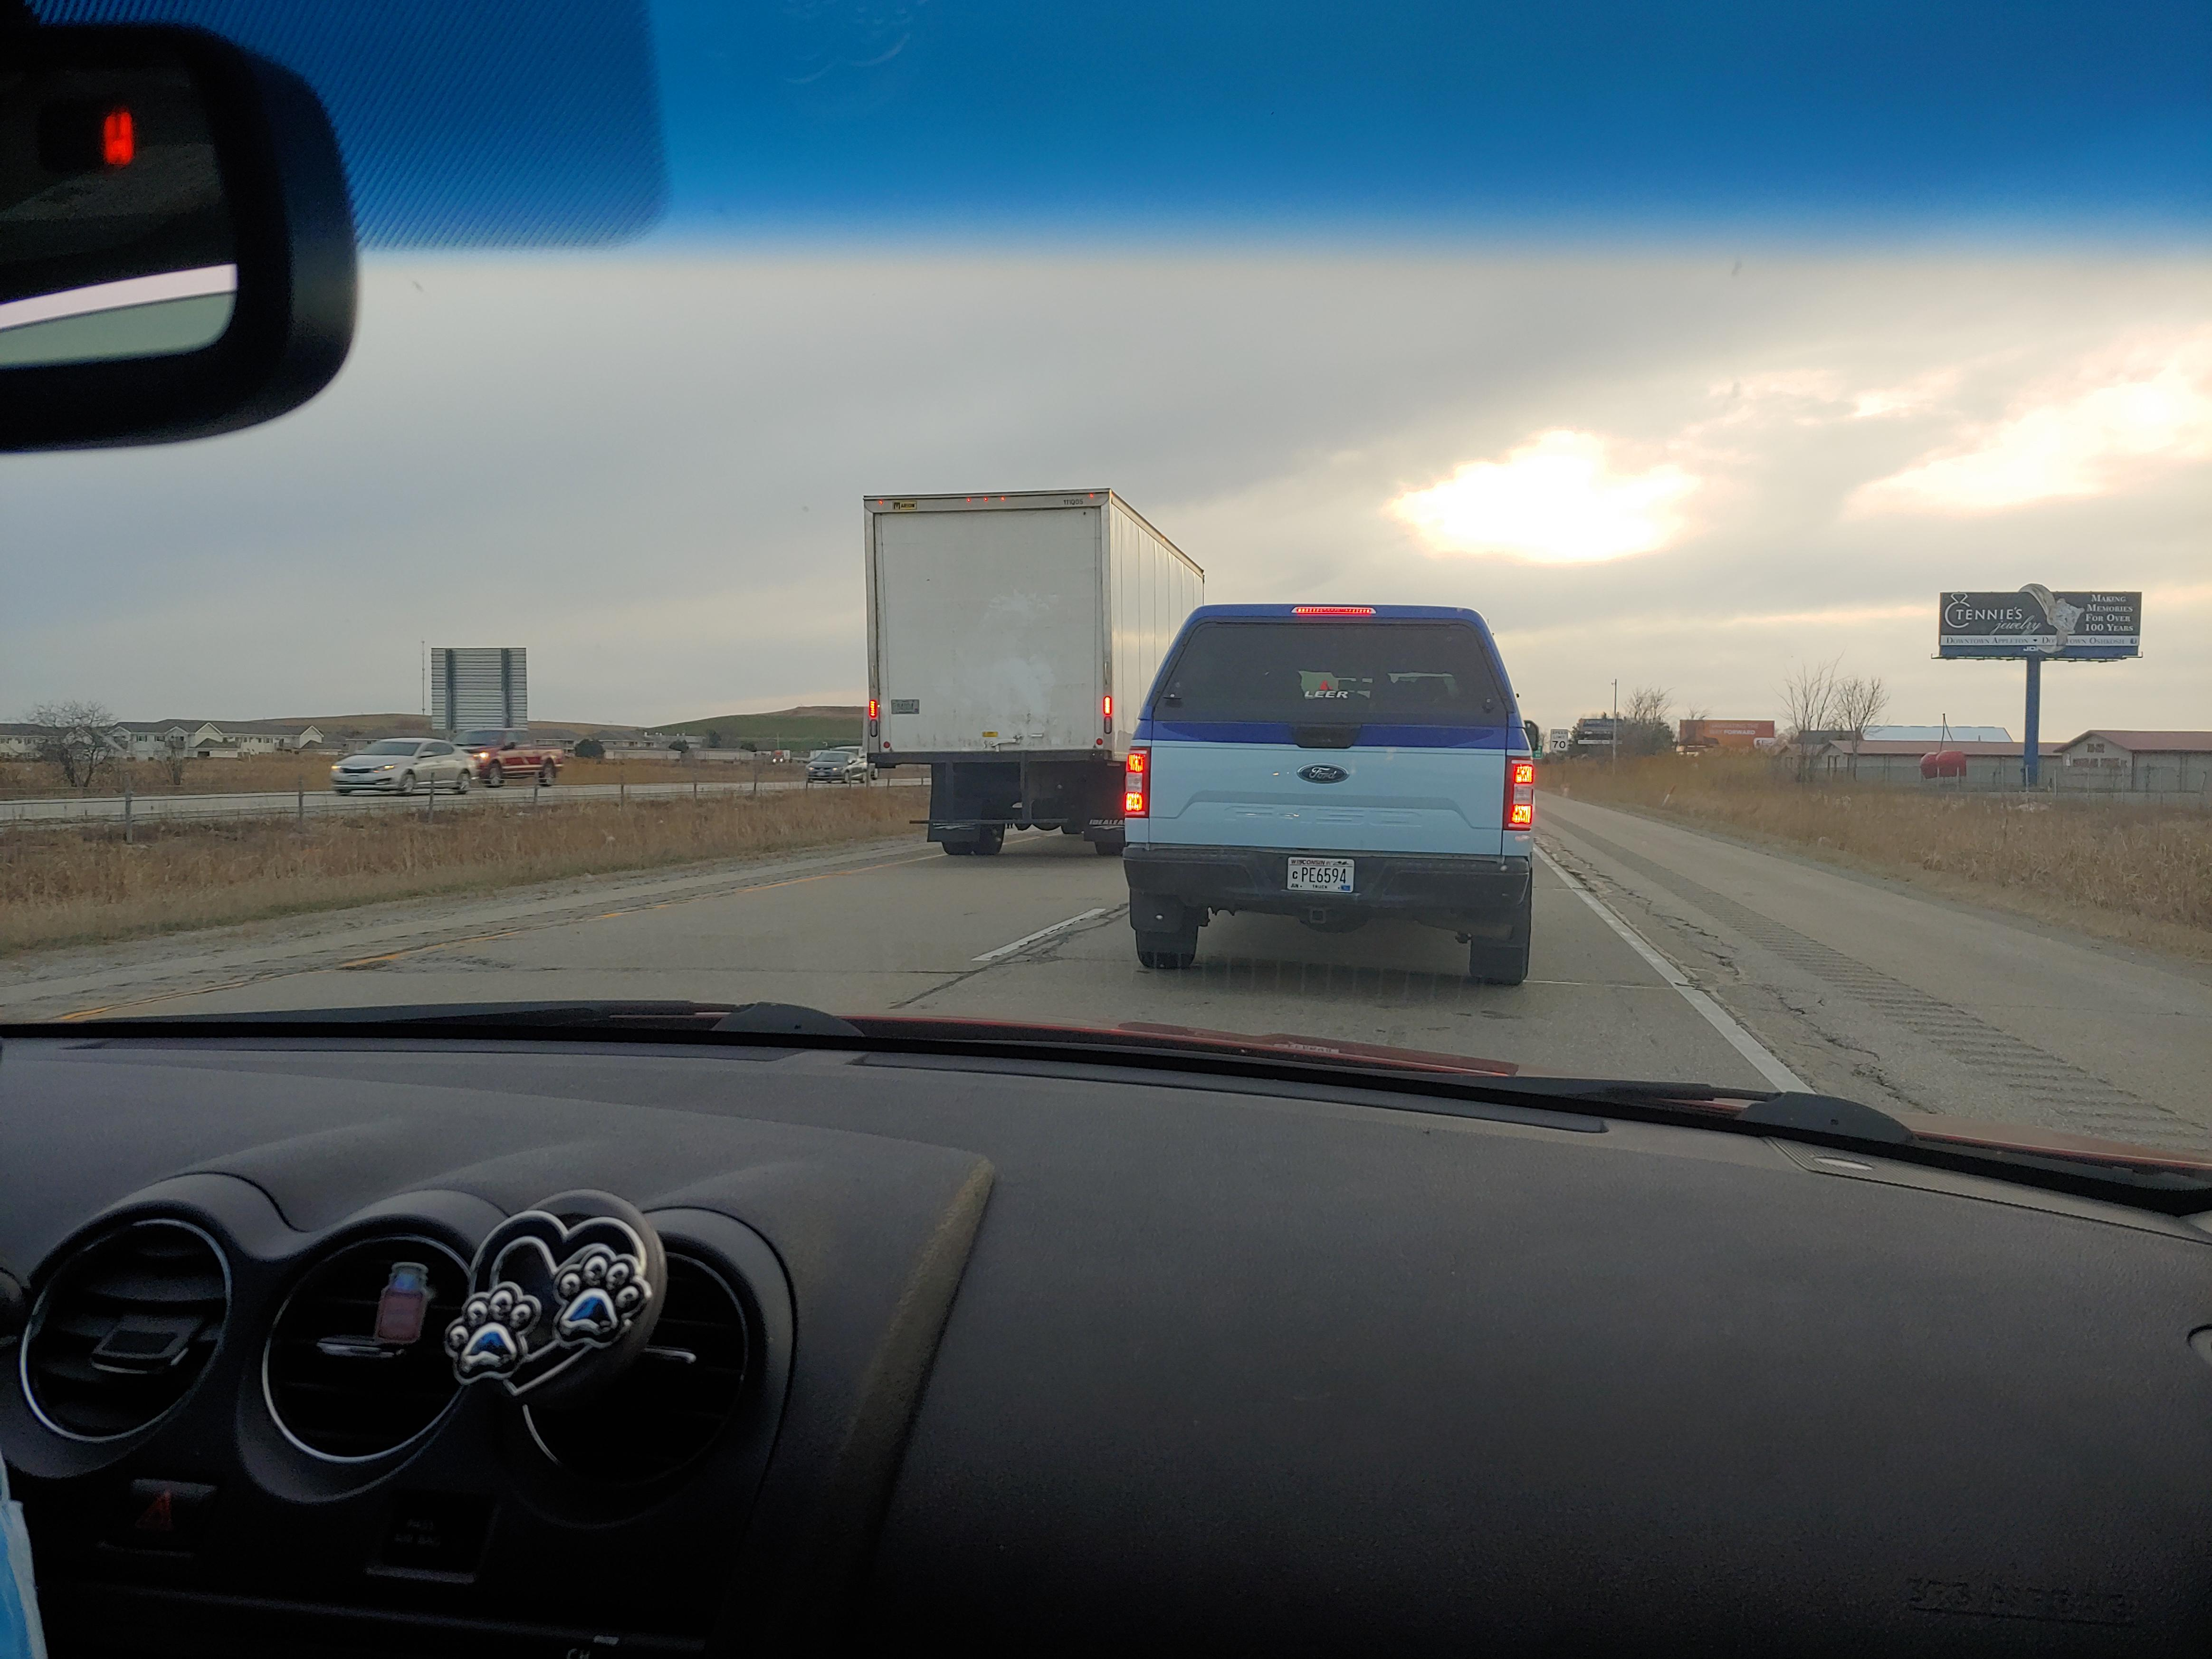 Traffic jam on highway by Little chute : wisconsin